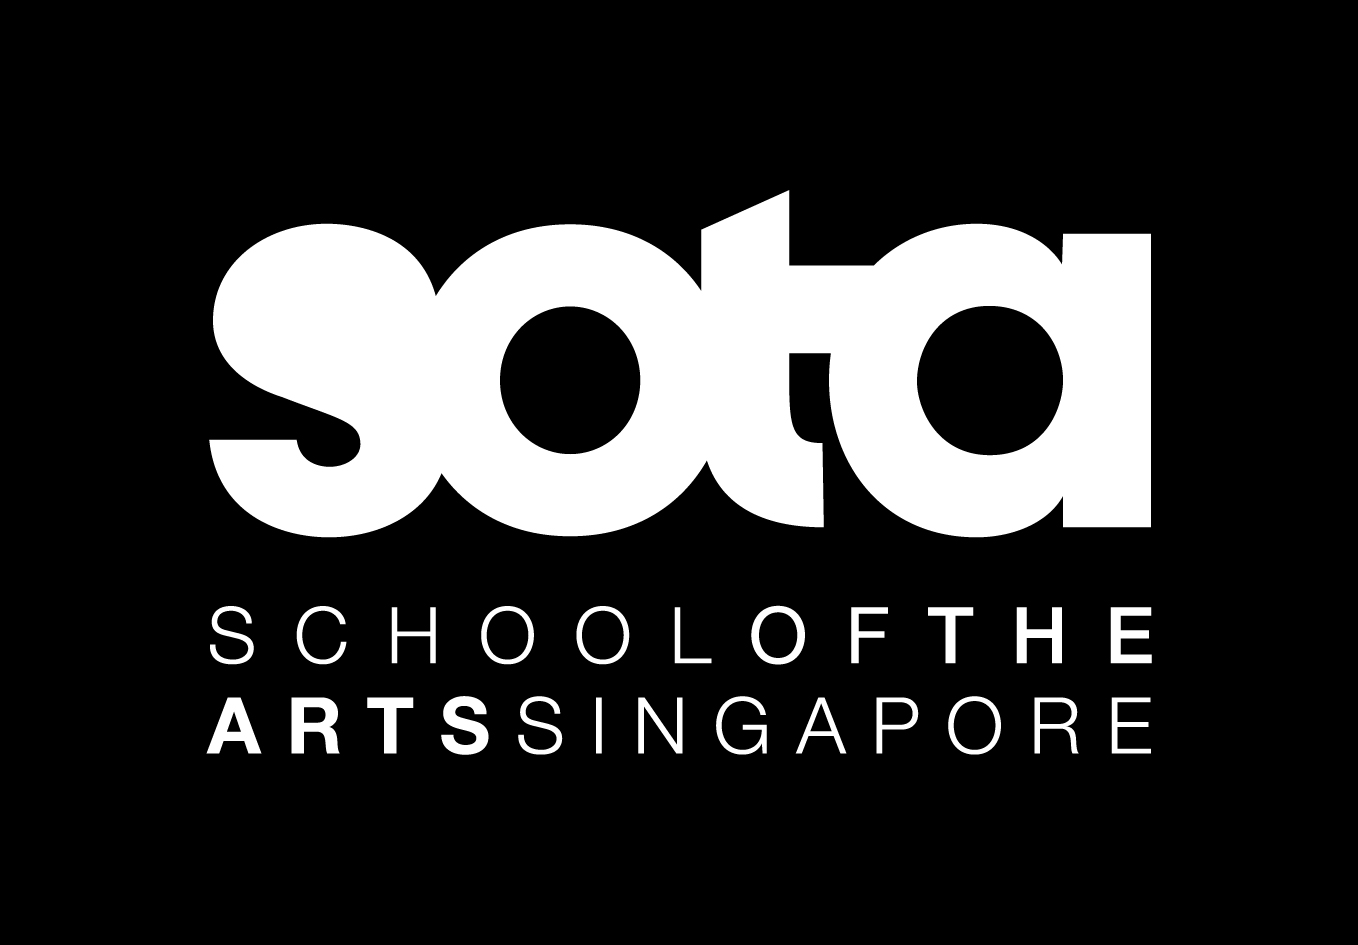 School of the Arts Singapore (SOTA)